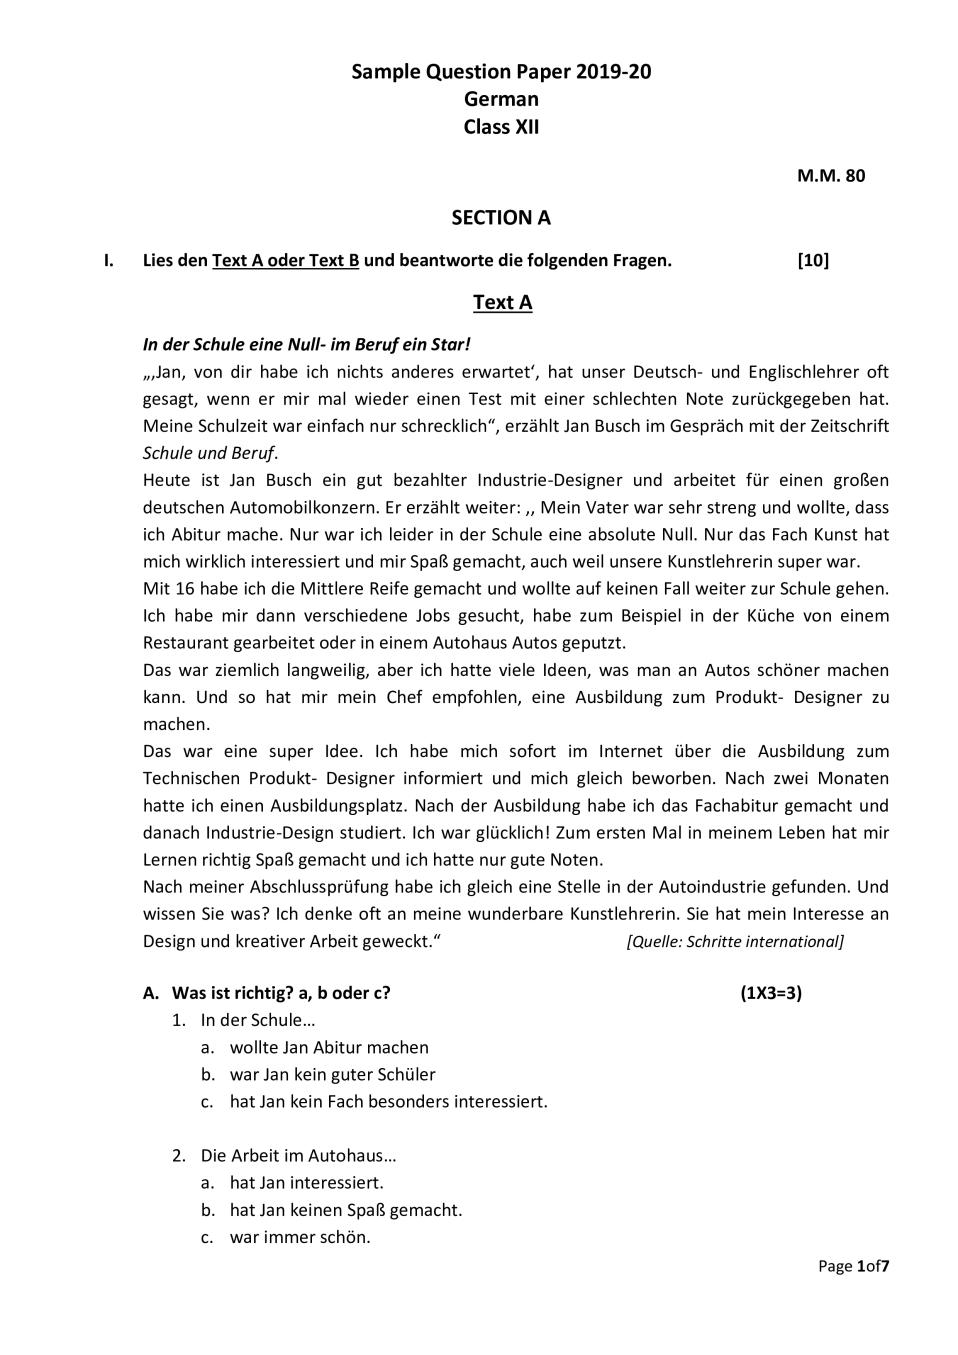 CBSE Sample Papers 2020 for Class 12 – German